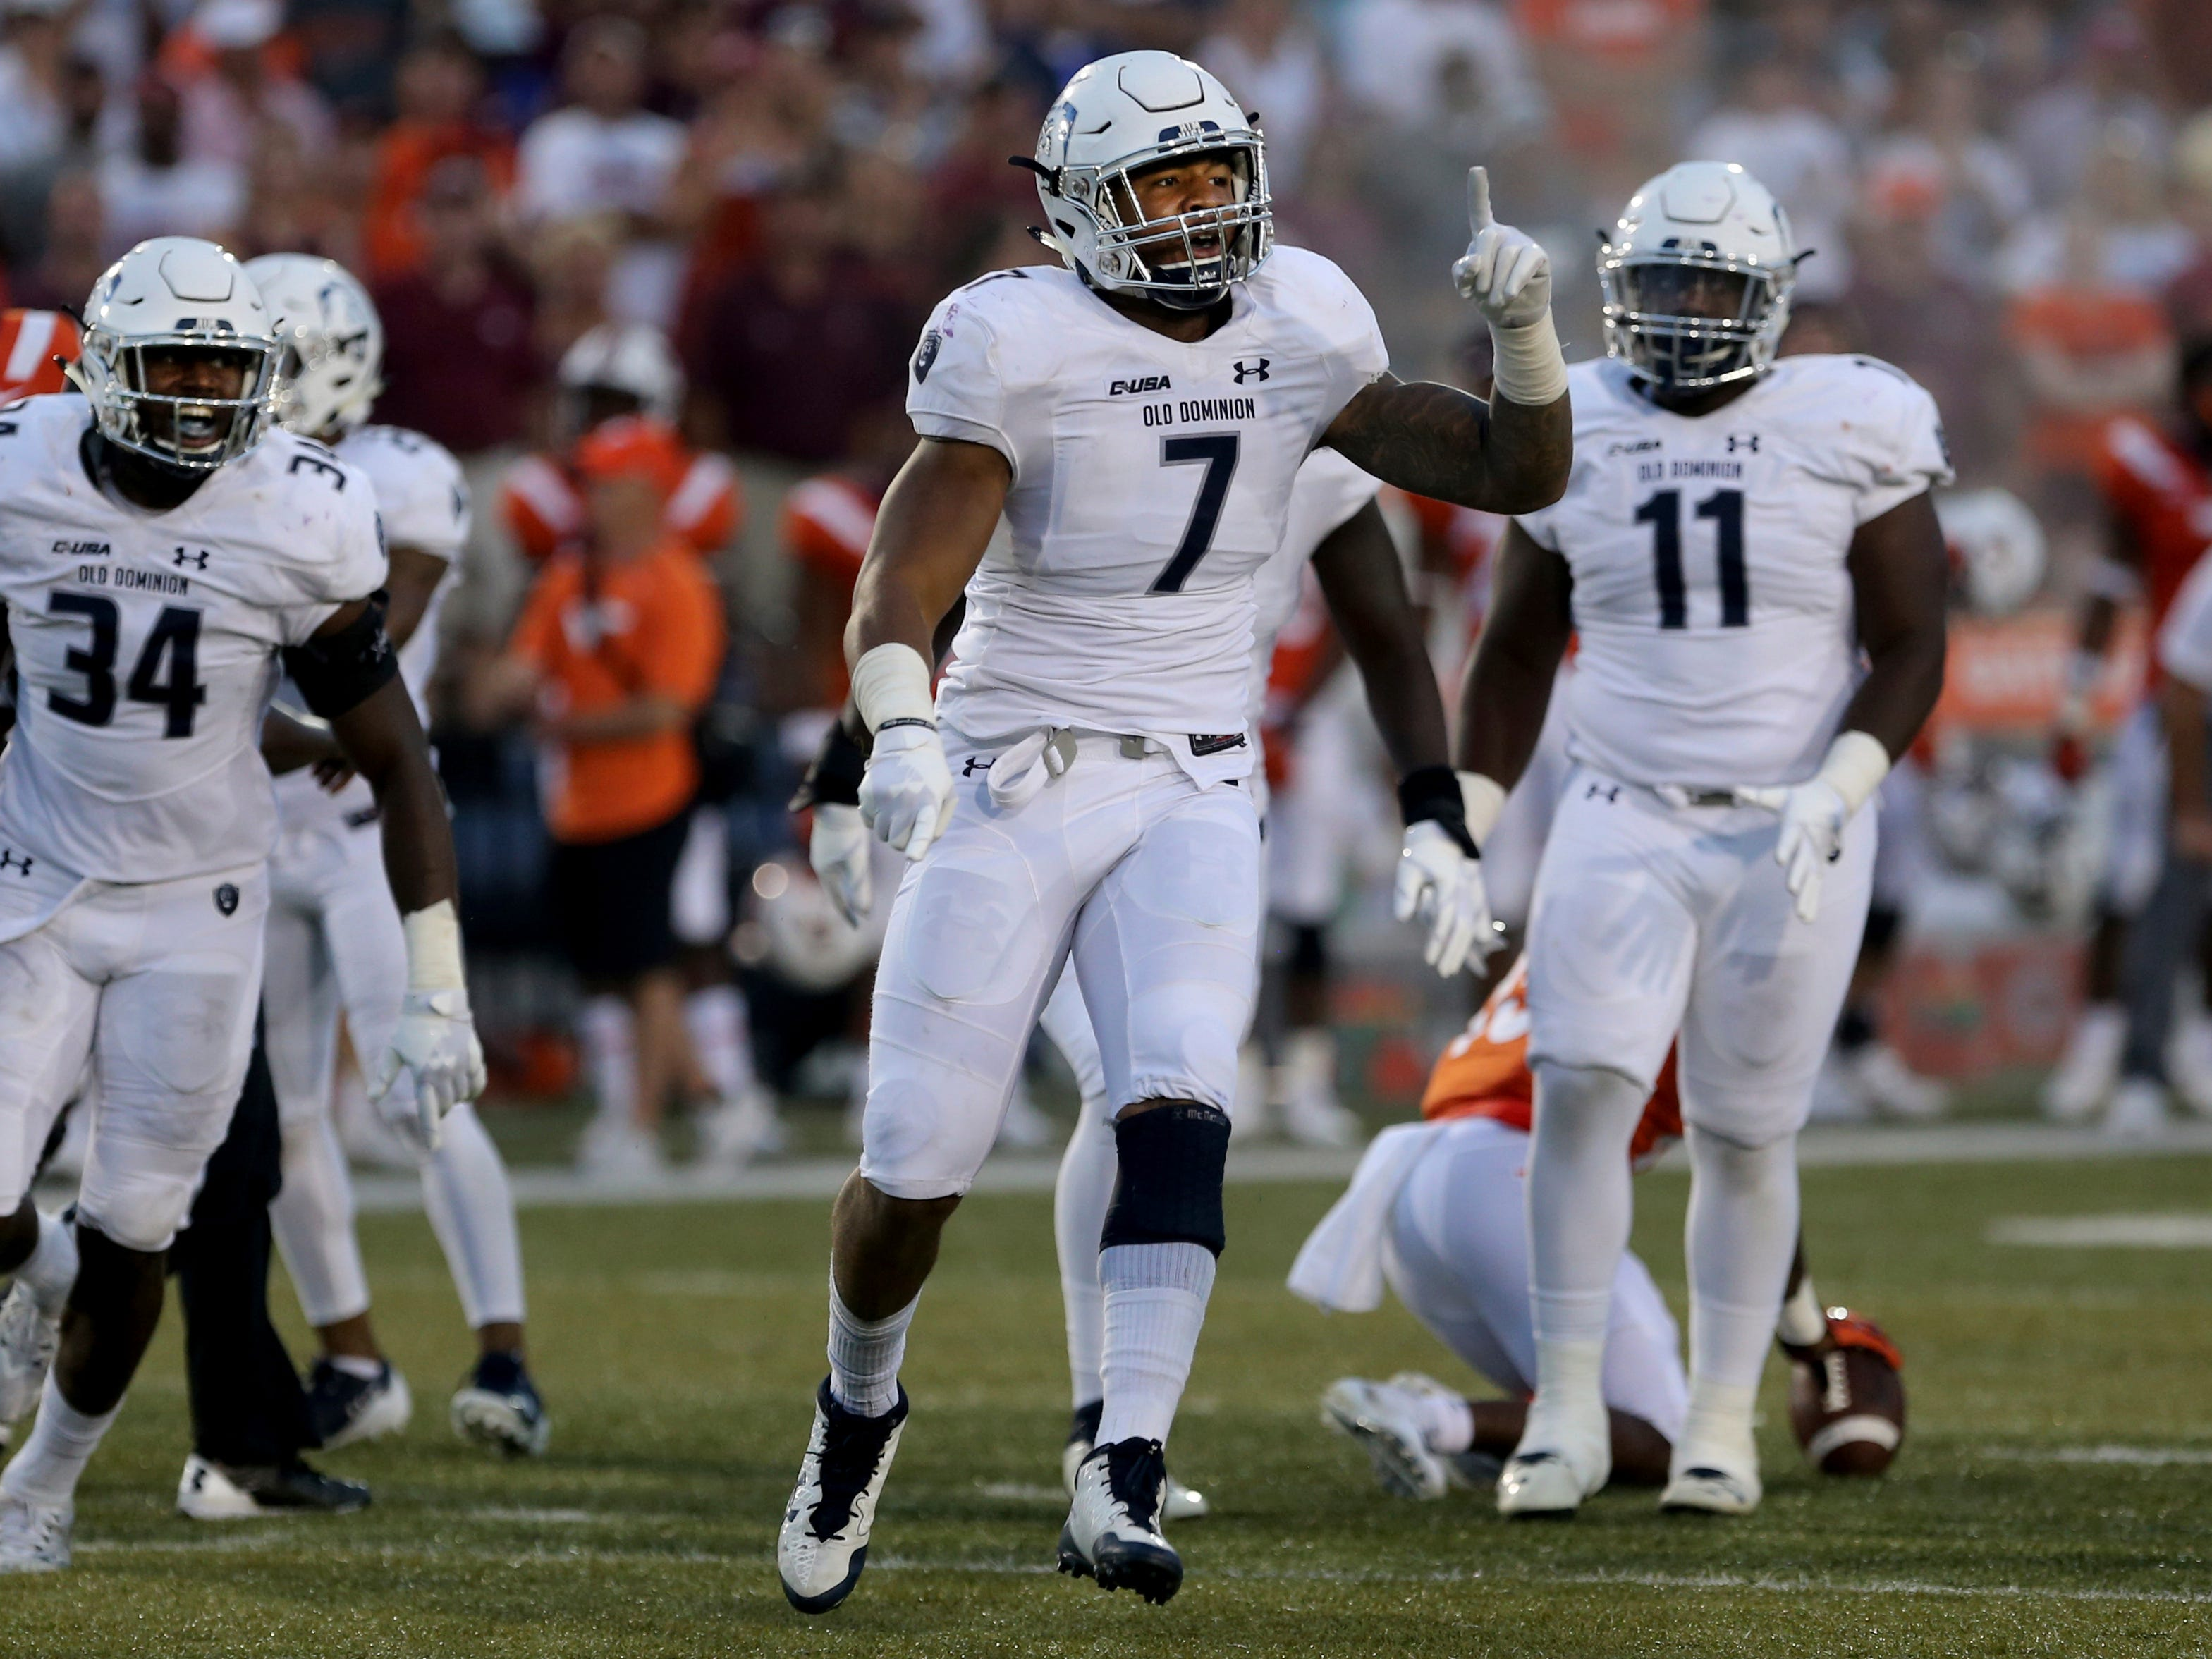 40. Oshane Ximines, DE, Old Dominion: Another small-school standout, Ximines doesn't have Ferguson's size. At 6-foot-3, 255 pounds, he's more likely to win with quickness than power. A fifth-year senior, he finished with a personal-best 12 sacks this season, while forcing at least three fumbles each of the past three years.